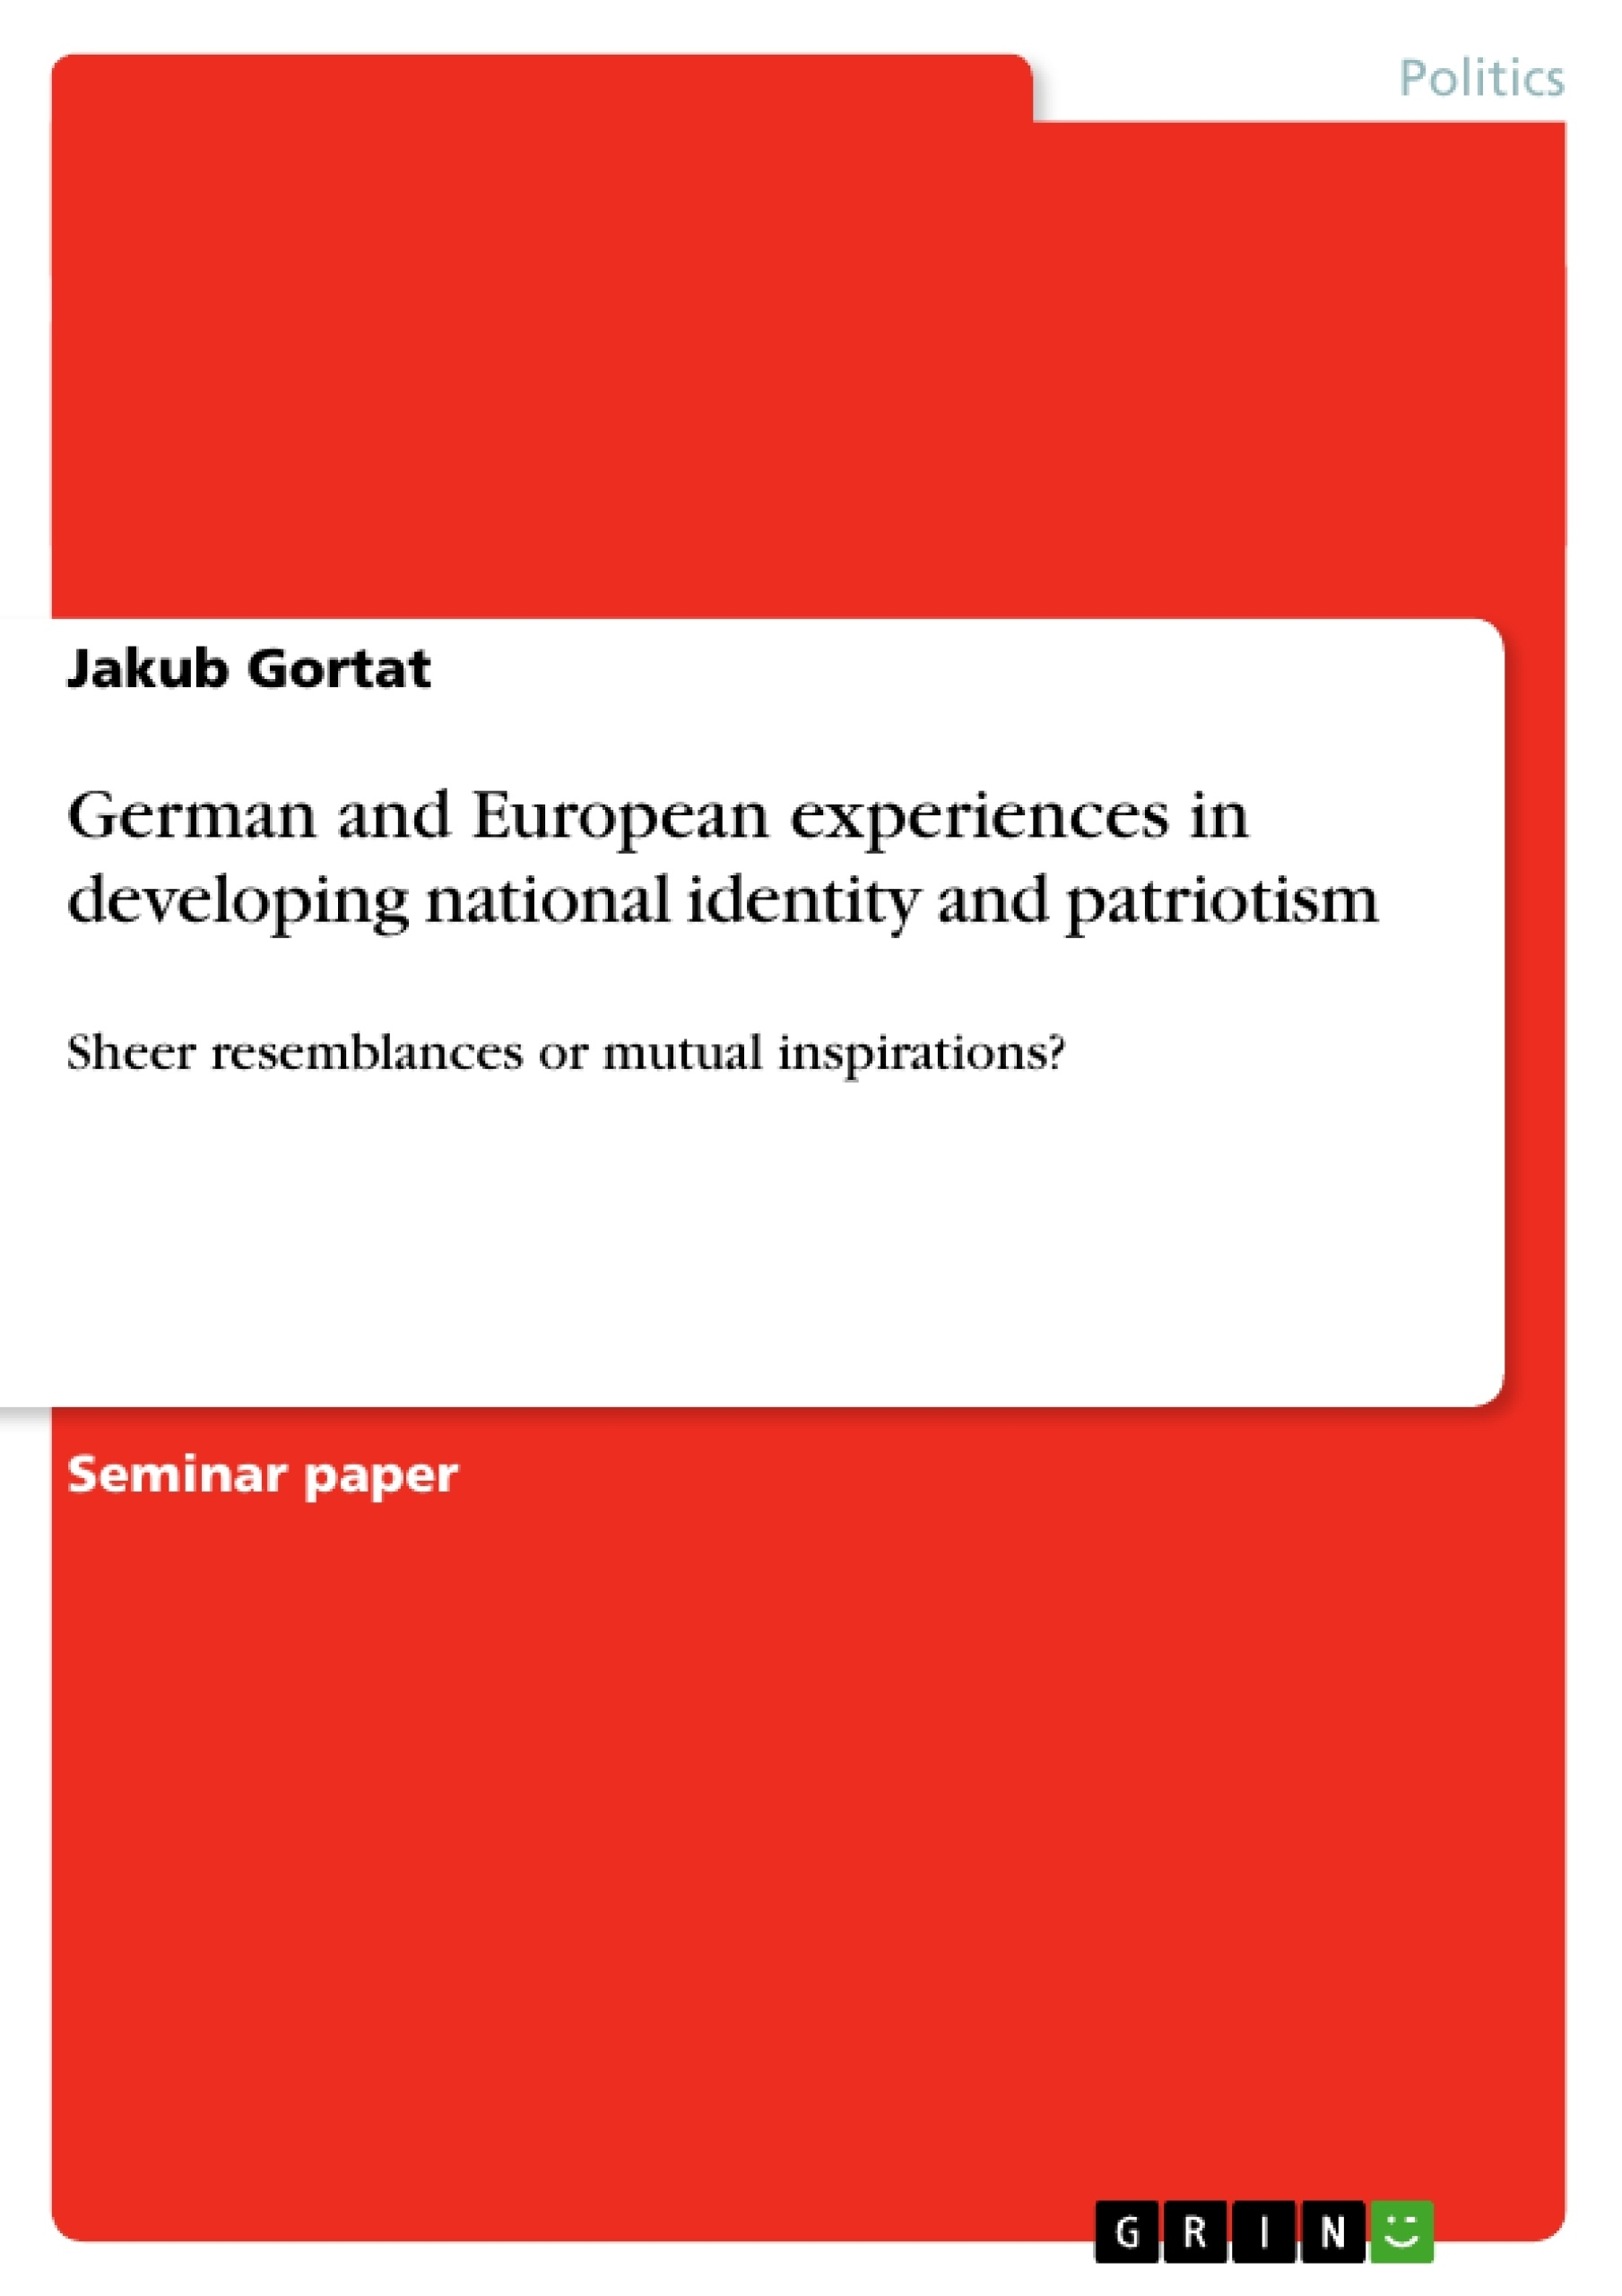 Title: German and European experiences in developing national identity and patriotism